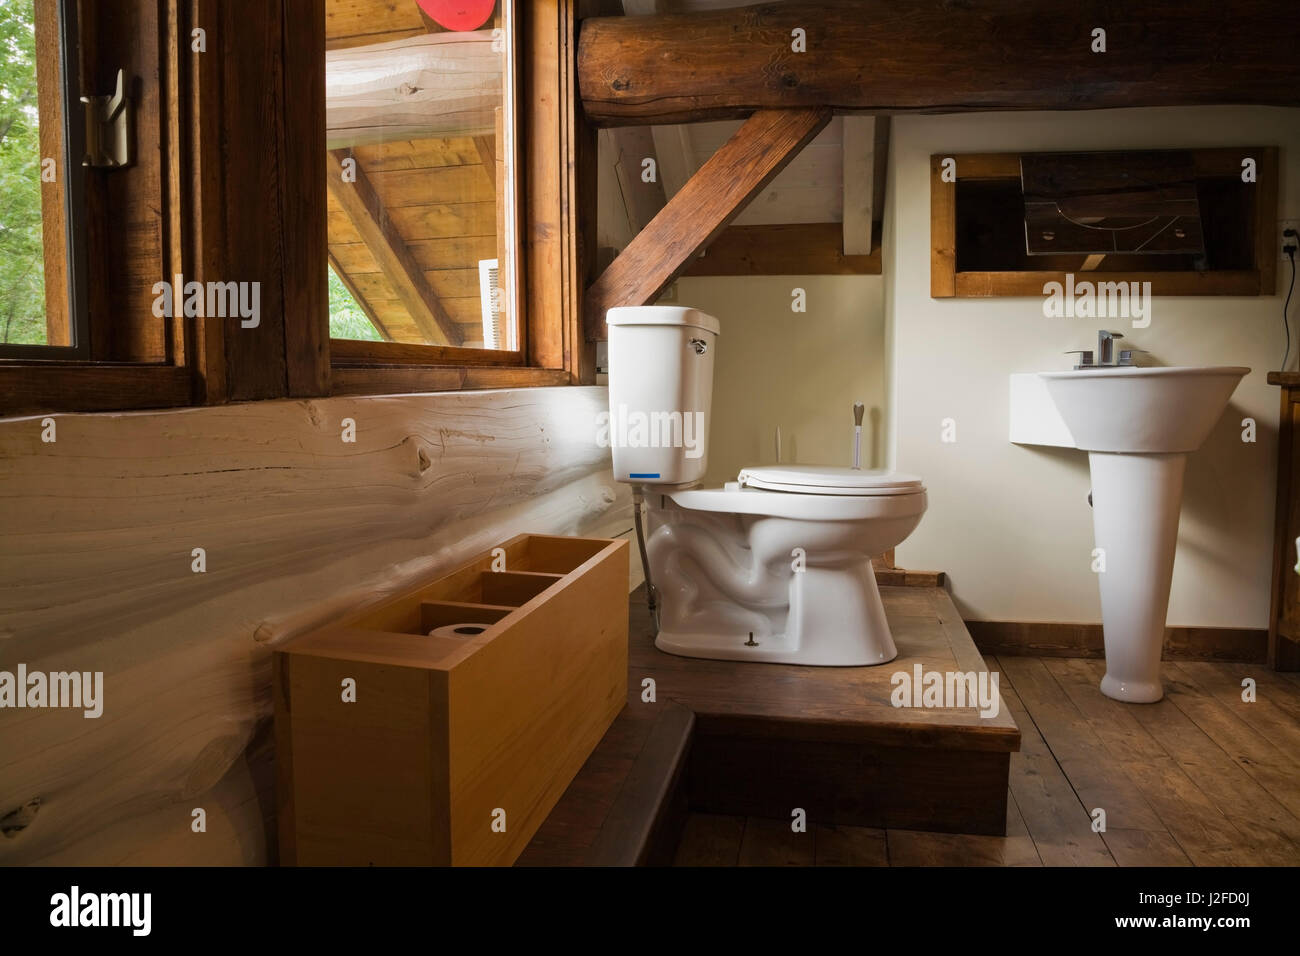 Toilet And Sink Exposed In The Open In The Master Bedroom On